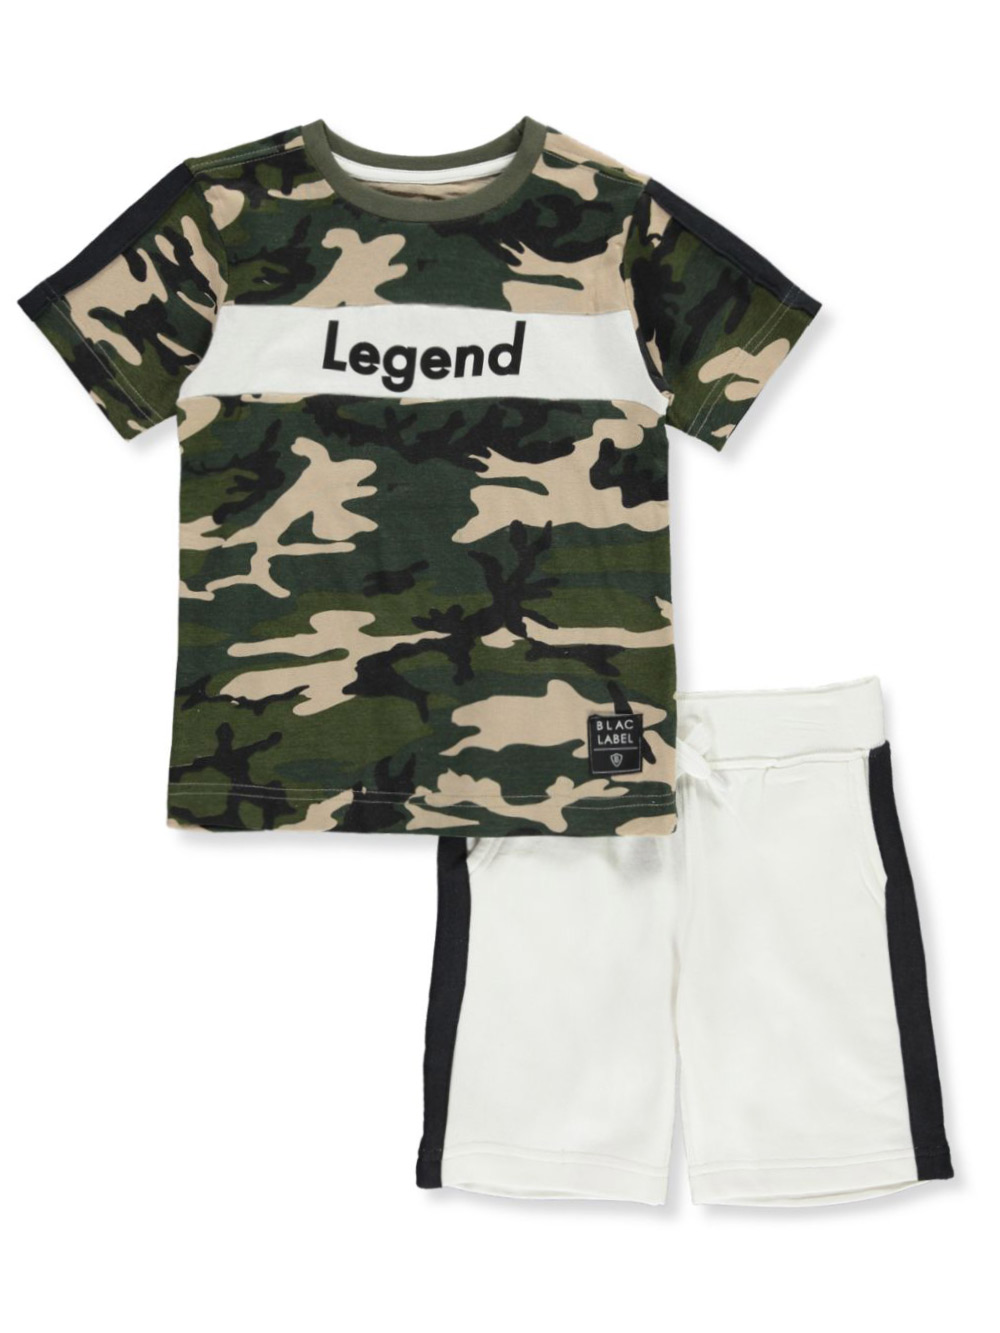 Legend 2-Piece Shorts Set Outfit